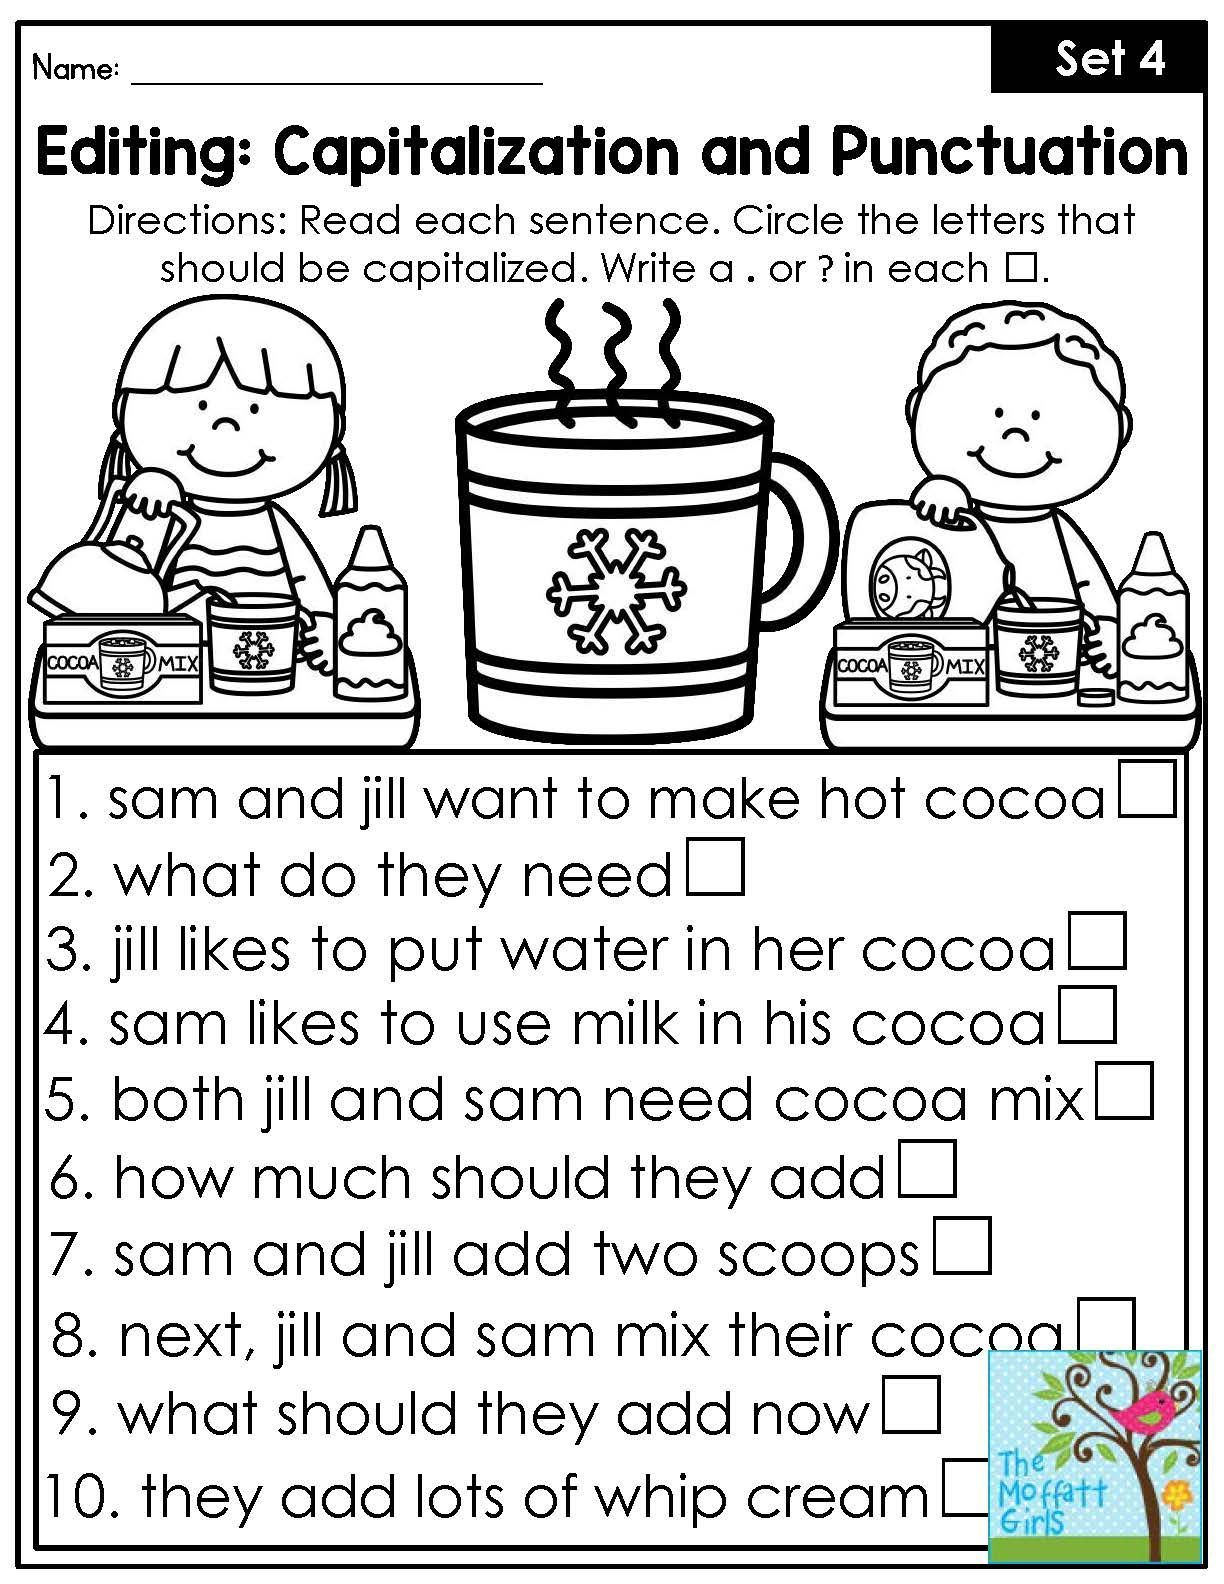 Editing Capitalization And Punctuation Fix The Sentences By Capitalizing The Correct Words And A Punctuation Worksheets First Grade Writing 1st Grade Writing